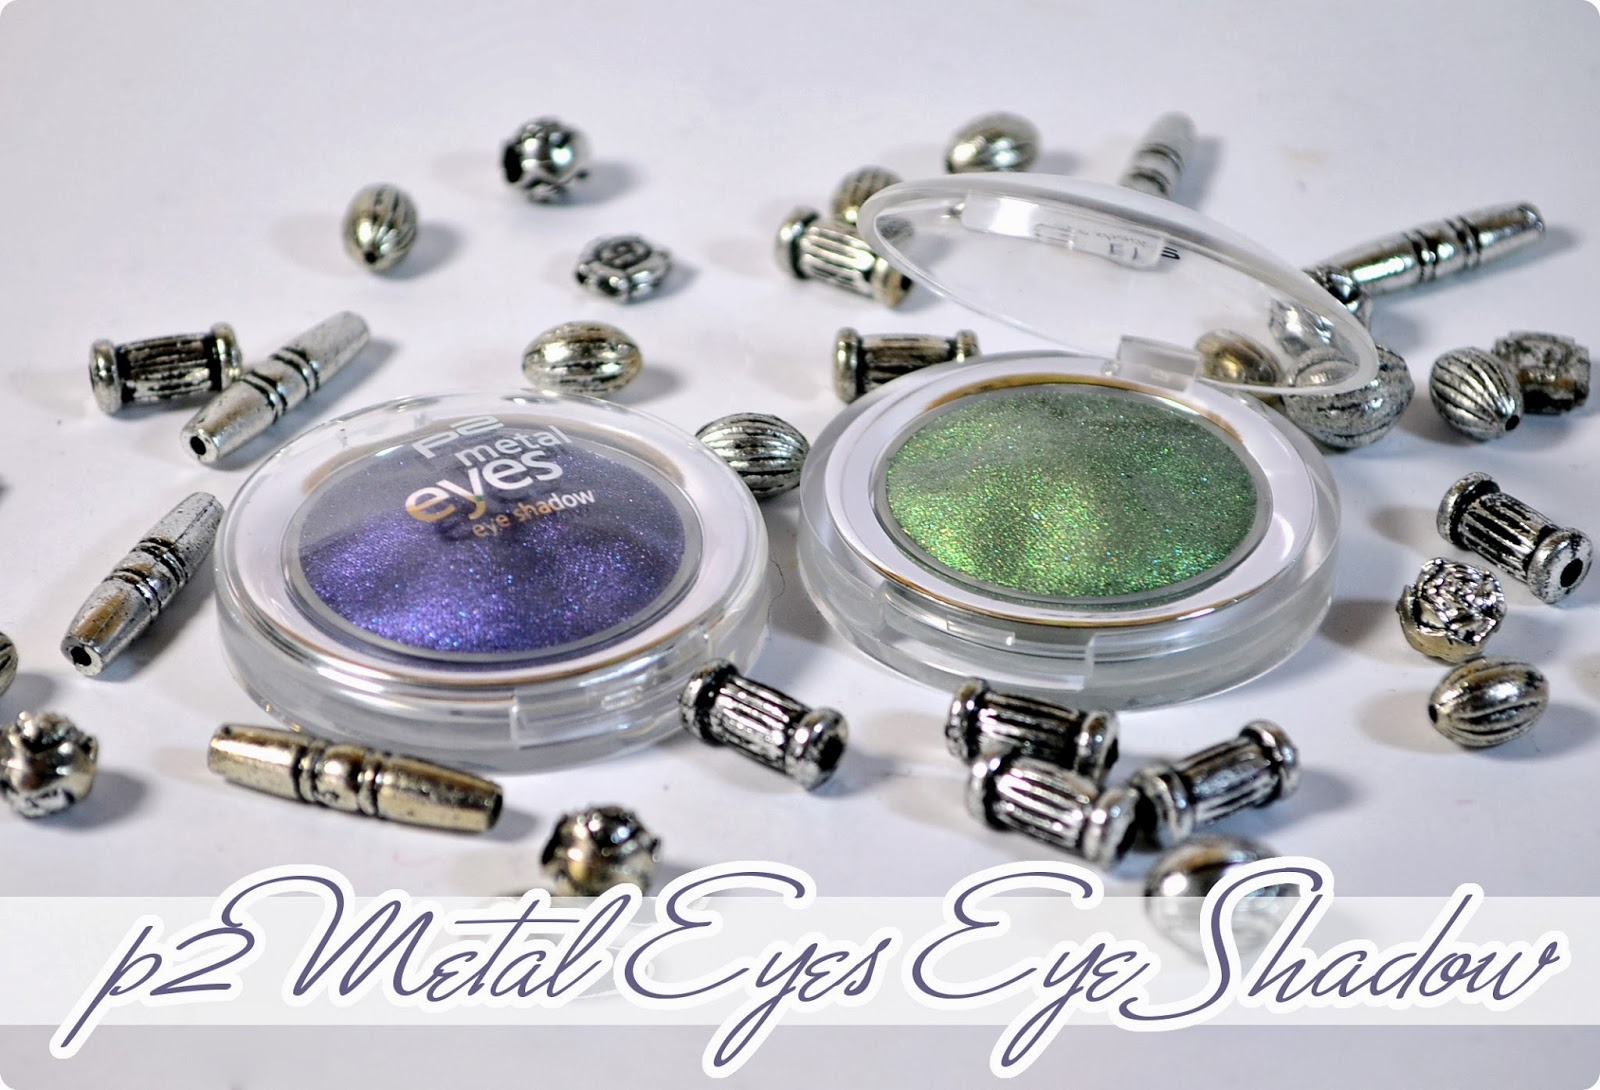 p2 Auslistungen 2014 - Metal Eyes Eye Shadow - Review + Swatches